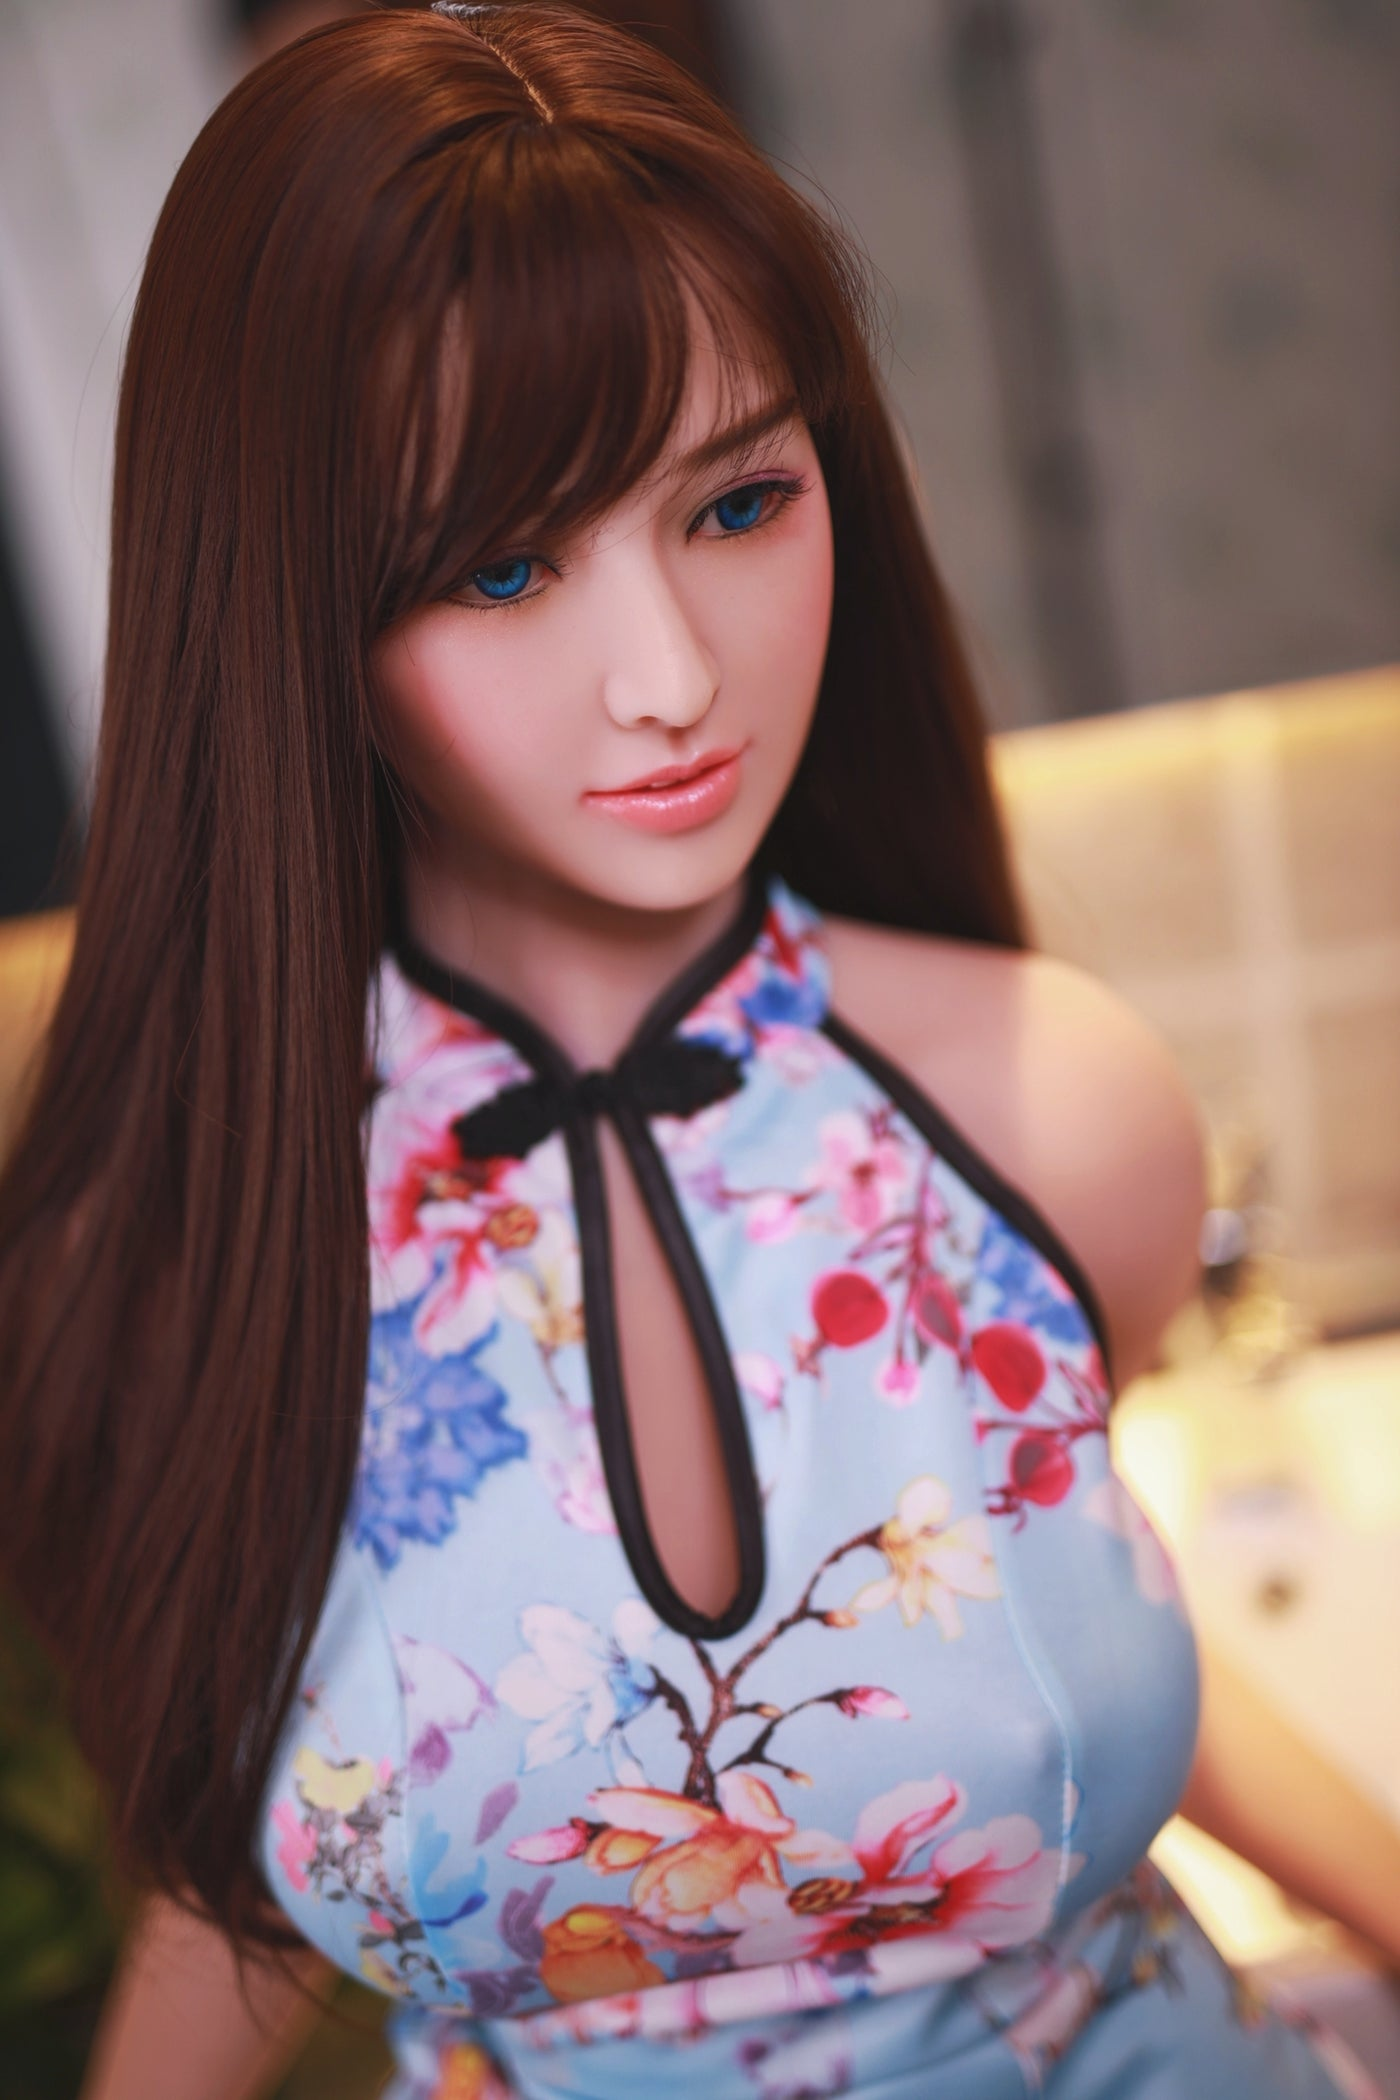 167cm Chinese Adult Sex Doll - Sophie - Monz Sex Dolls